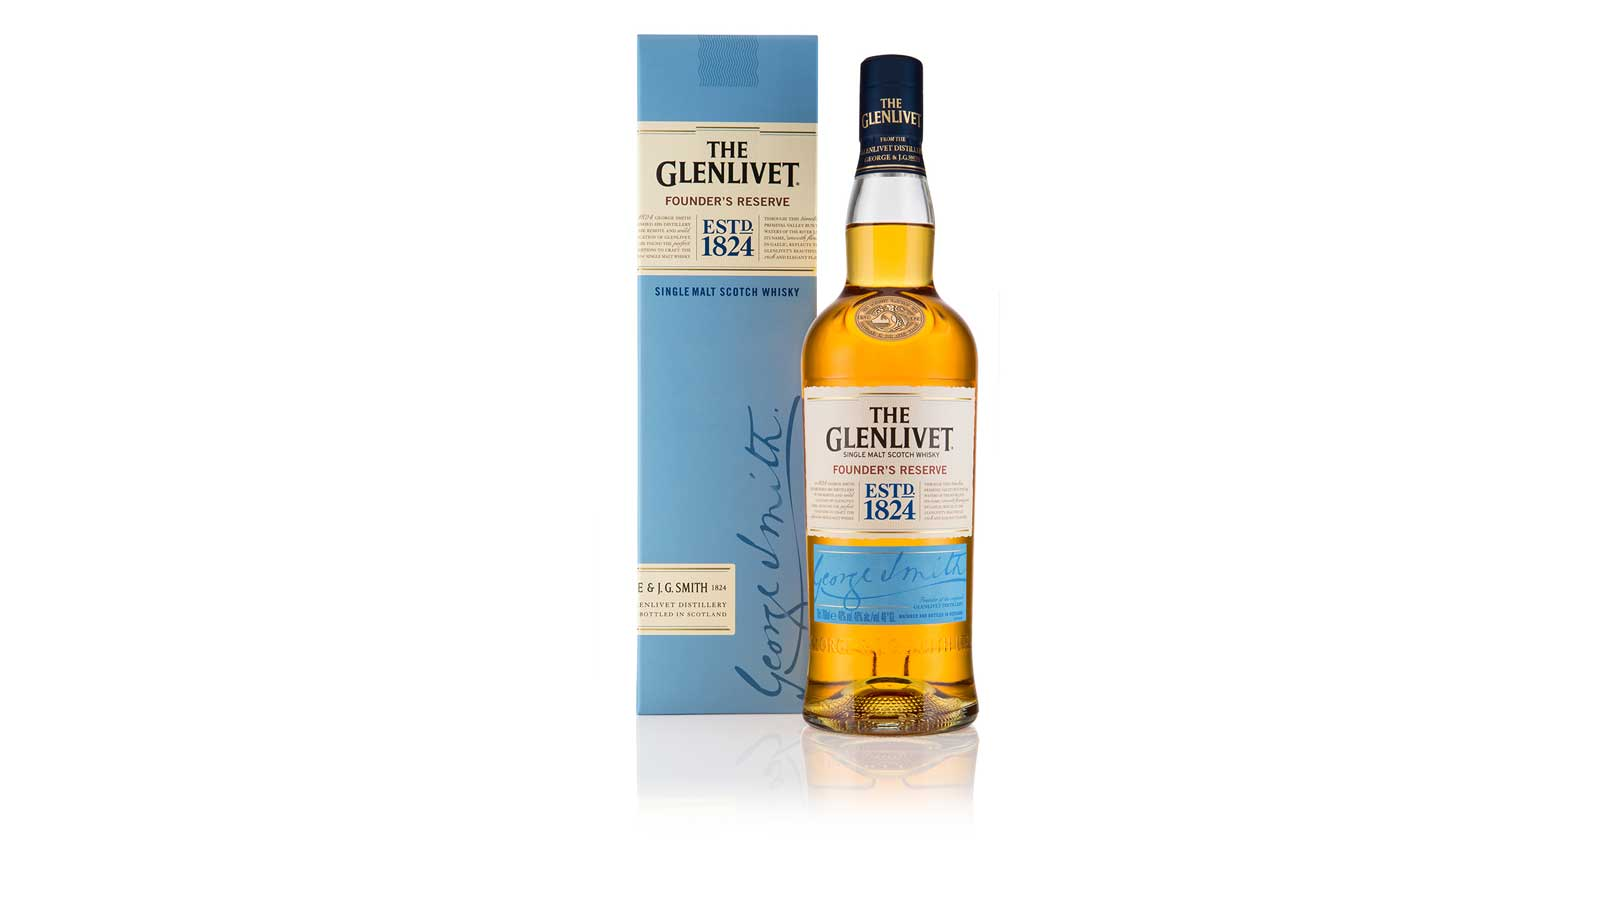 The Glenlivet announces the arrival of Founder's Reserve